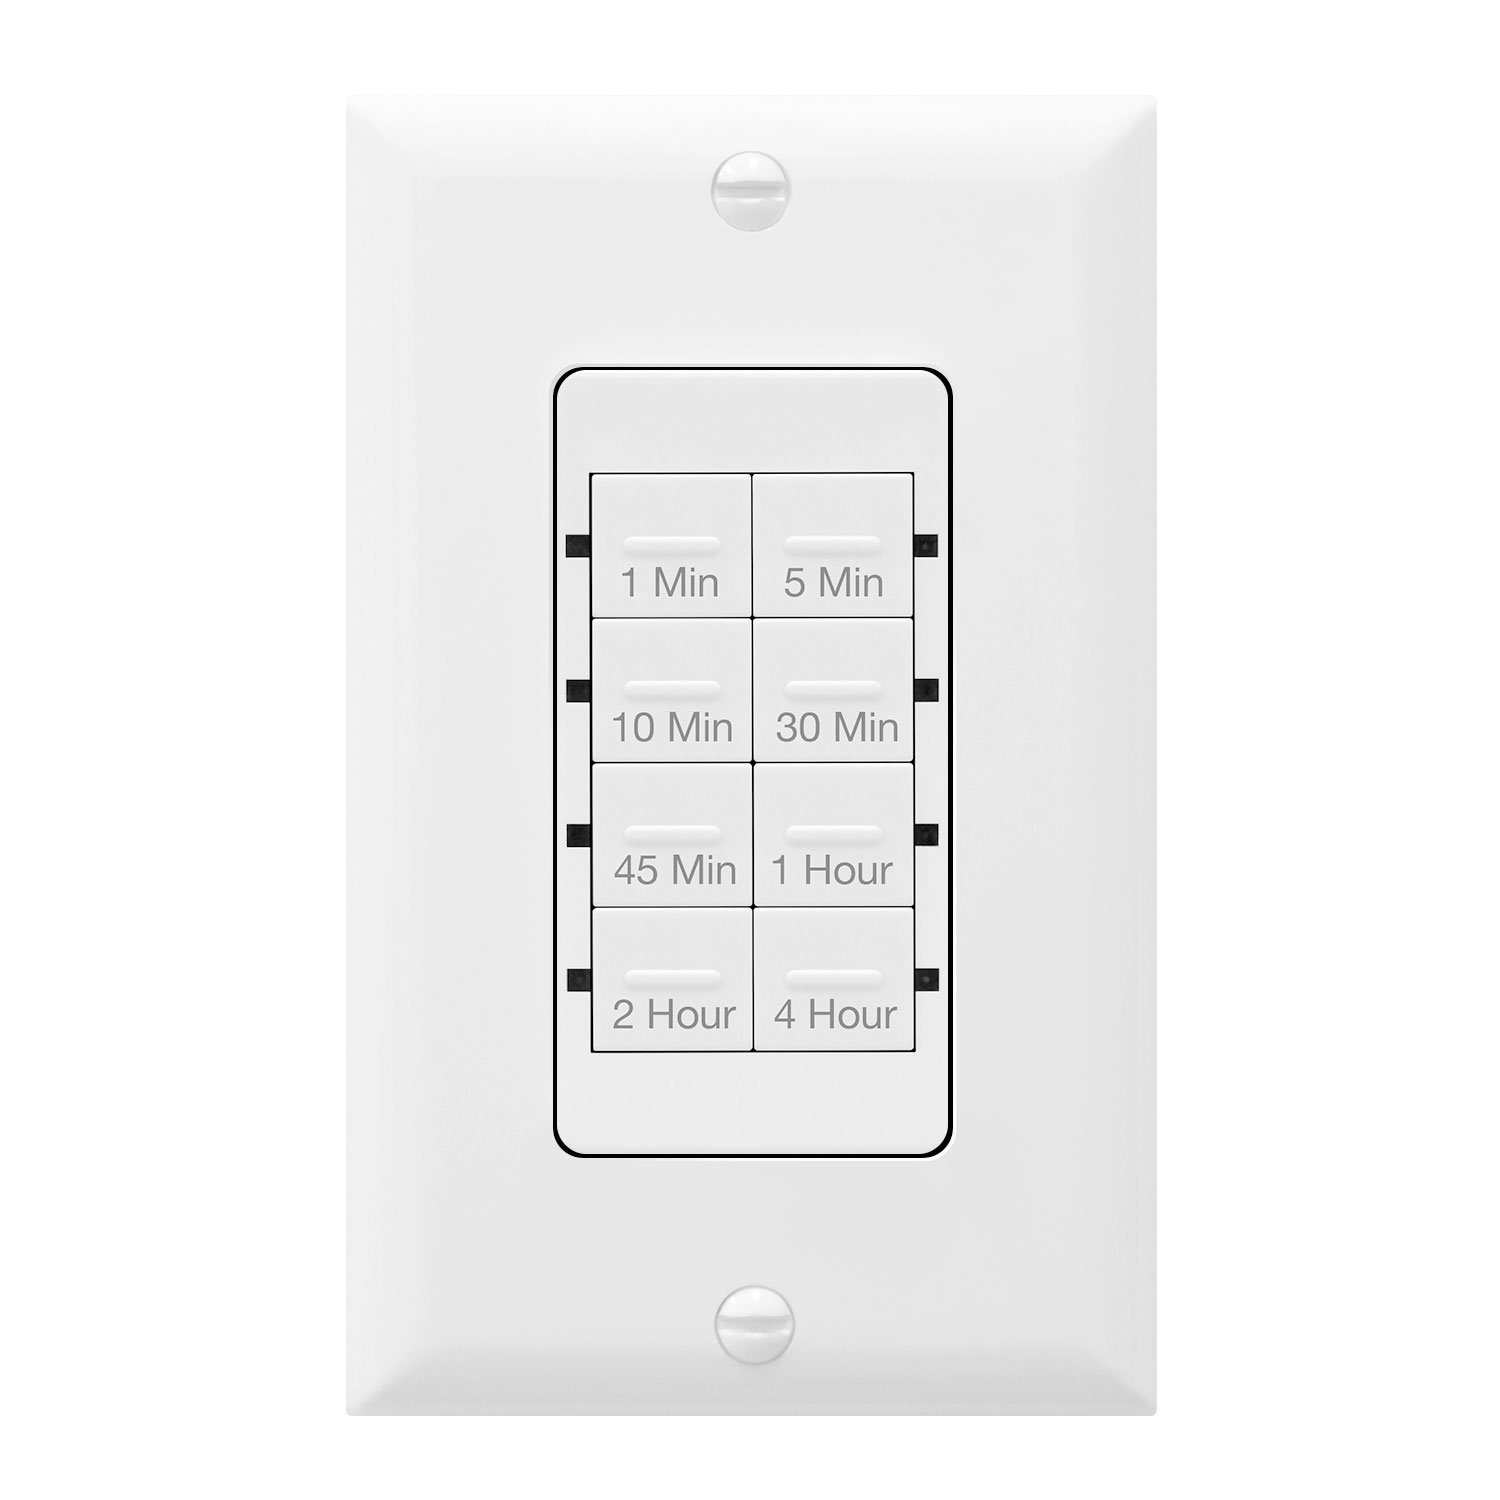 TOPGREENER Countdown Timer Switch, In-Wall Electrical Switch for Fans, Lights, Ventilation, 1-5-10-30-45 min, 1-2-4 hr, 600W LED, 1/2HP, Neutral Wire Required, Interchangeable Face Colors, TGT08-W